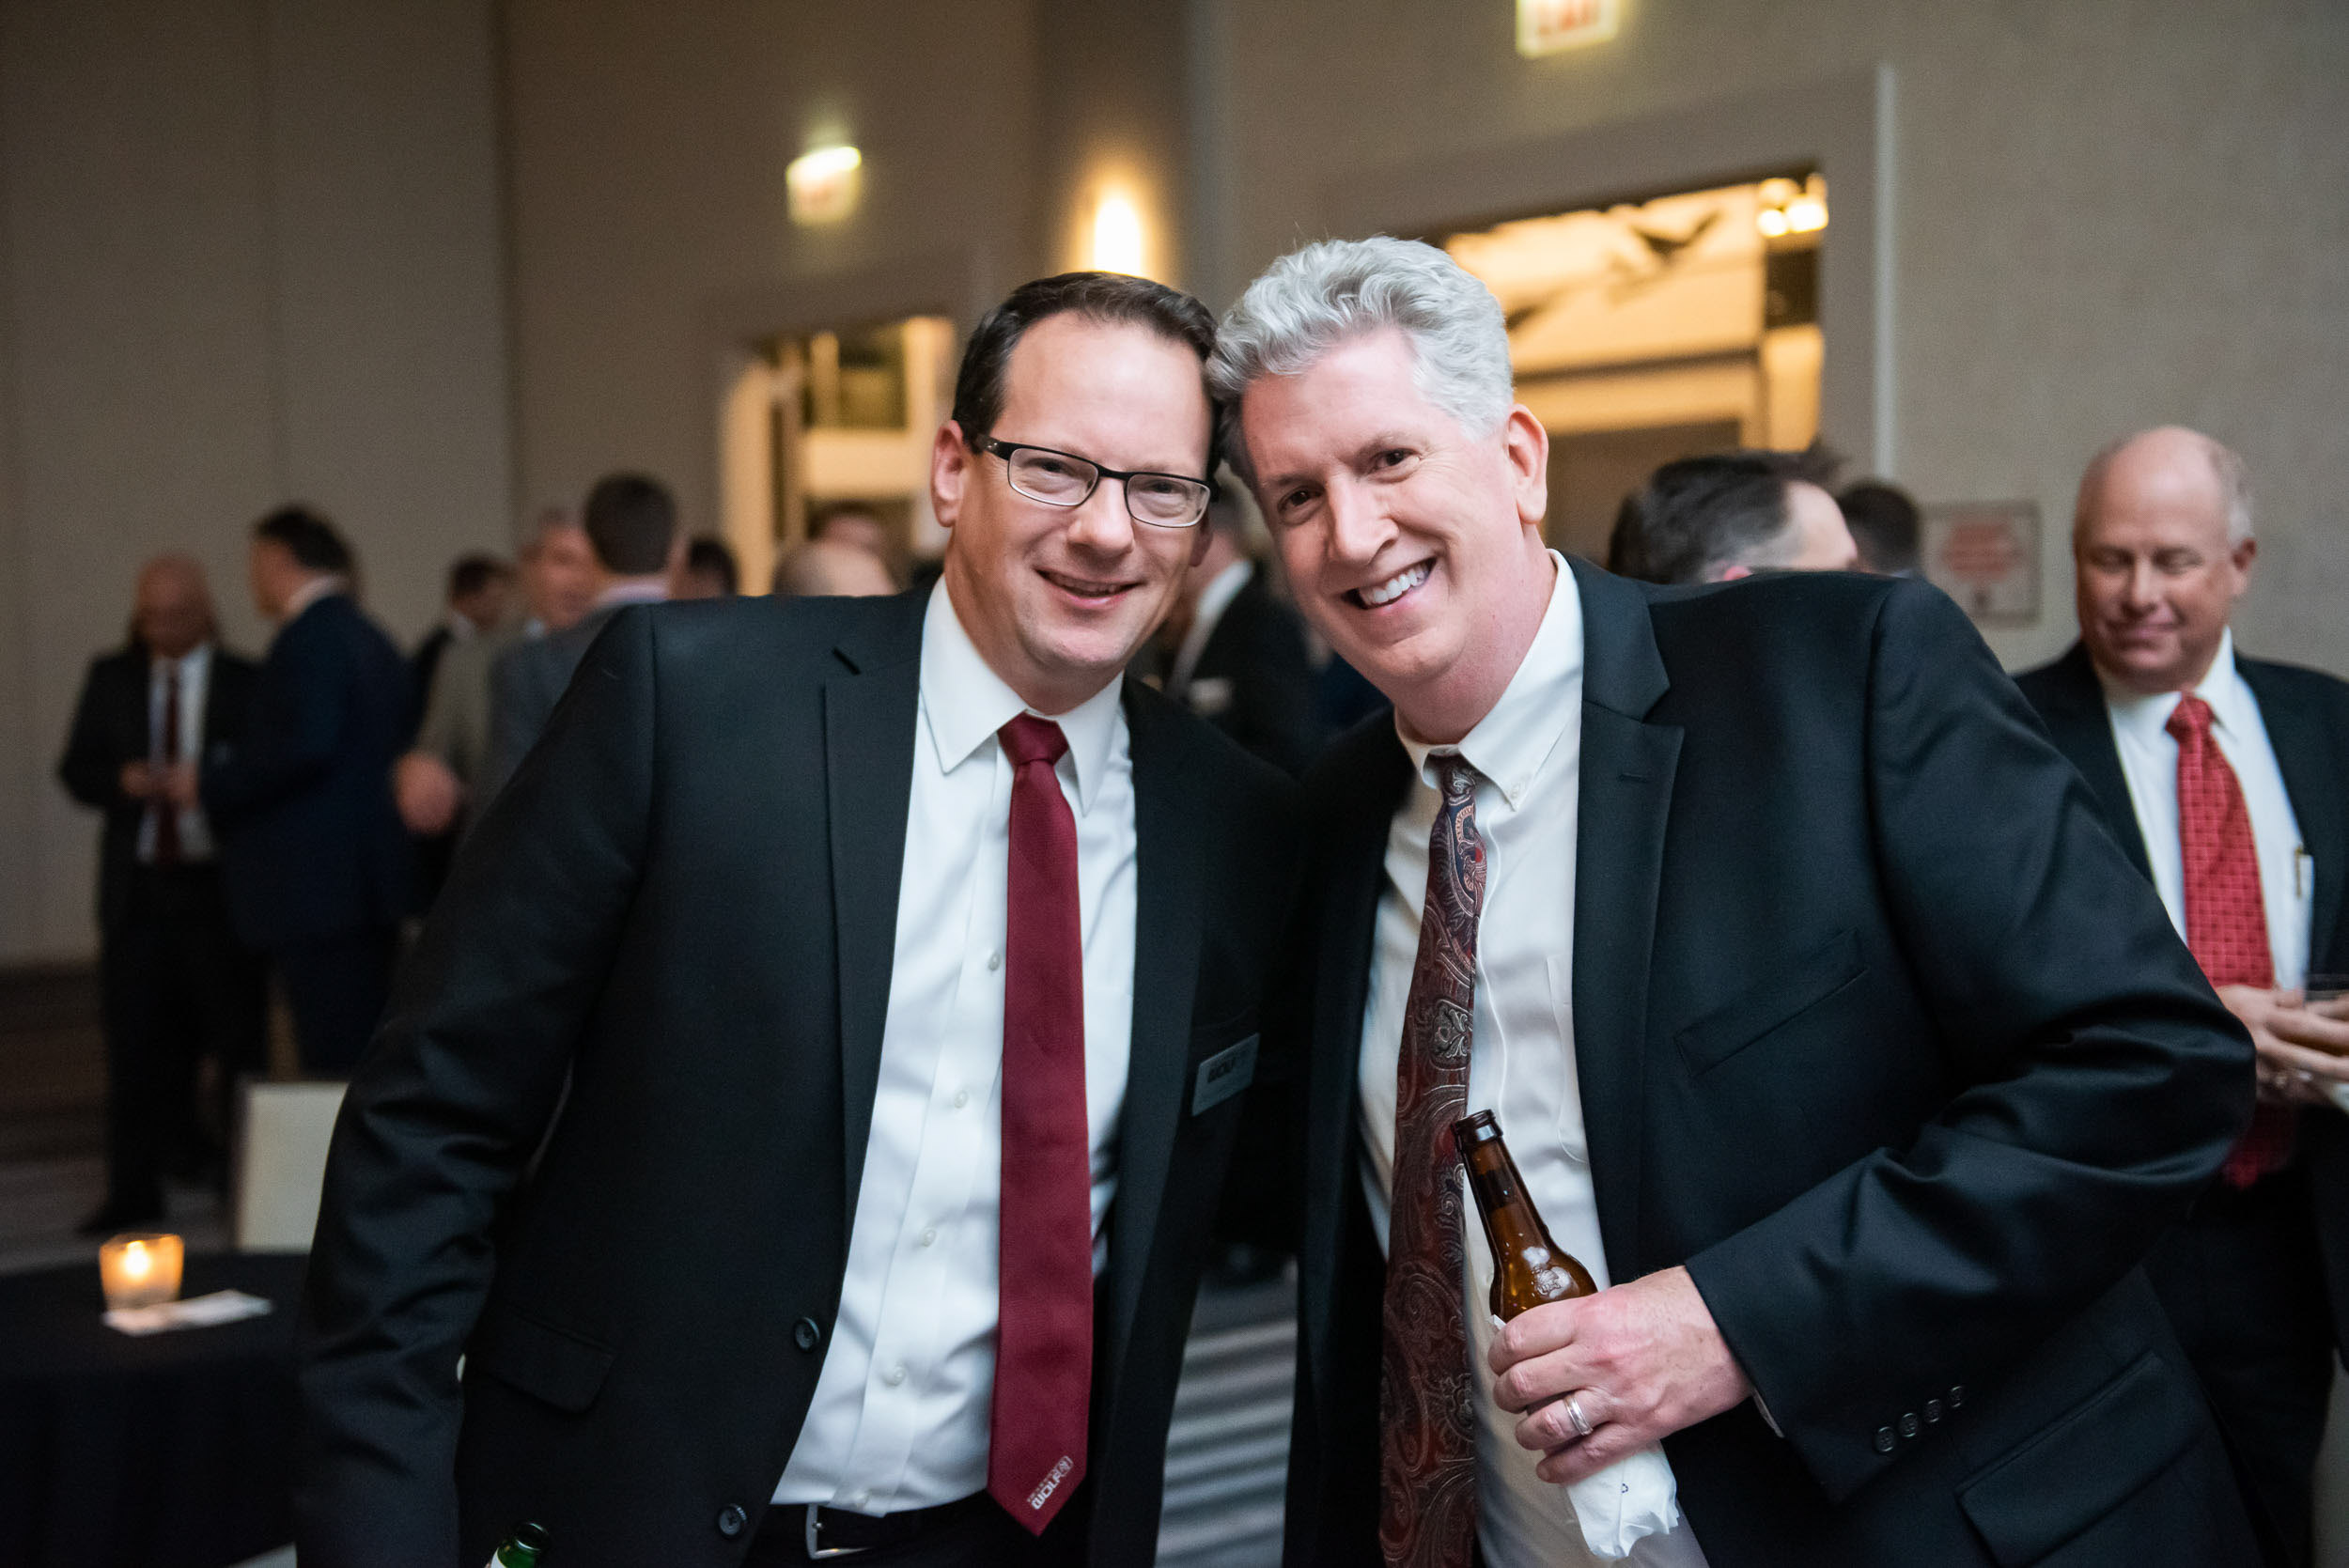 2019 National Sales and Marketing Meeting - mark campbell photography-260_Resized_Resized.jpg